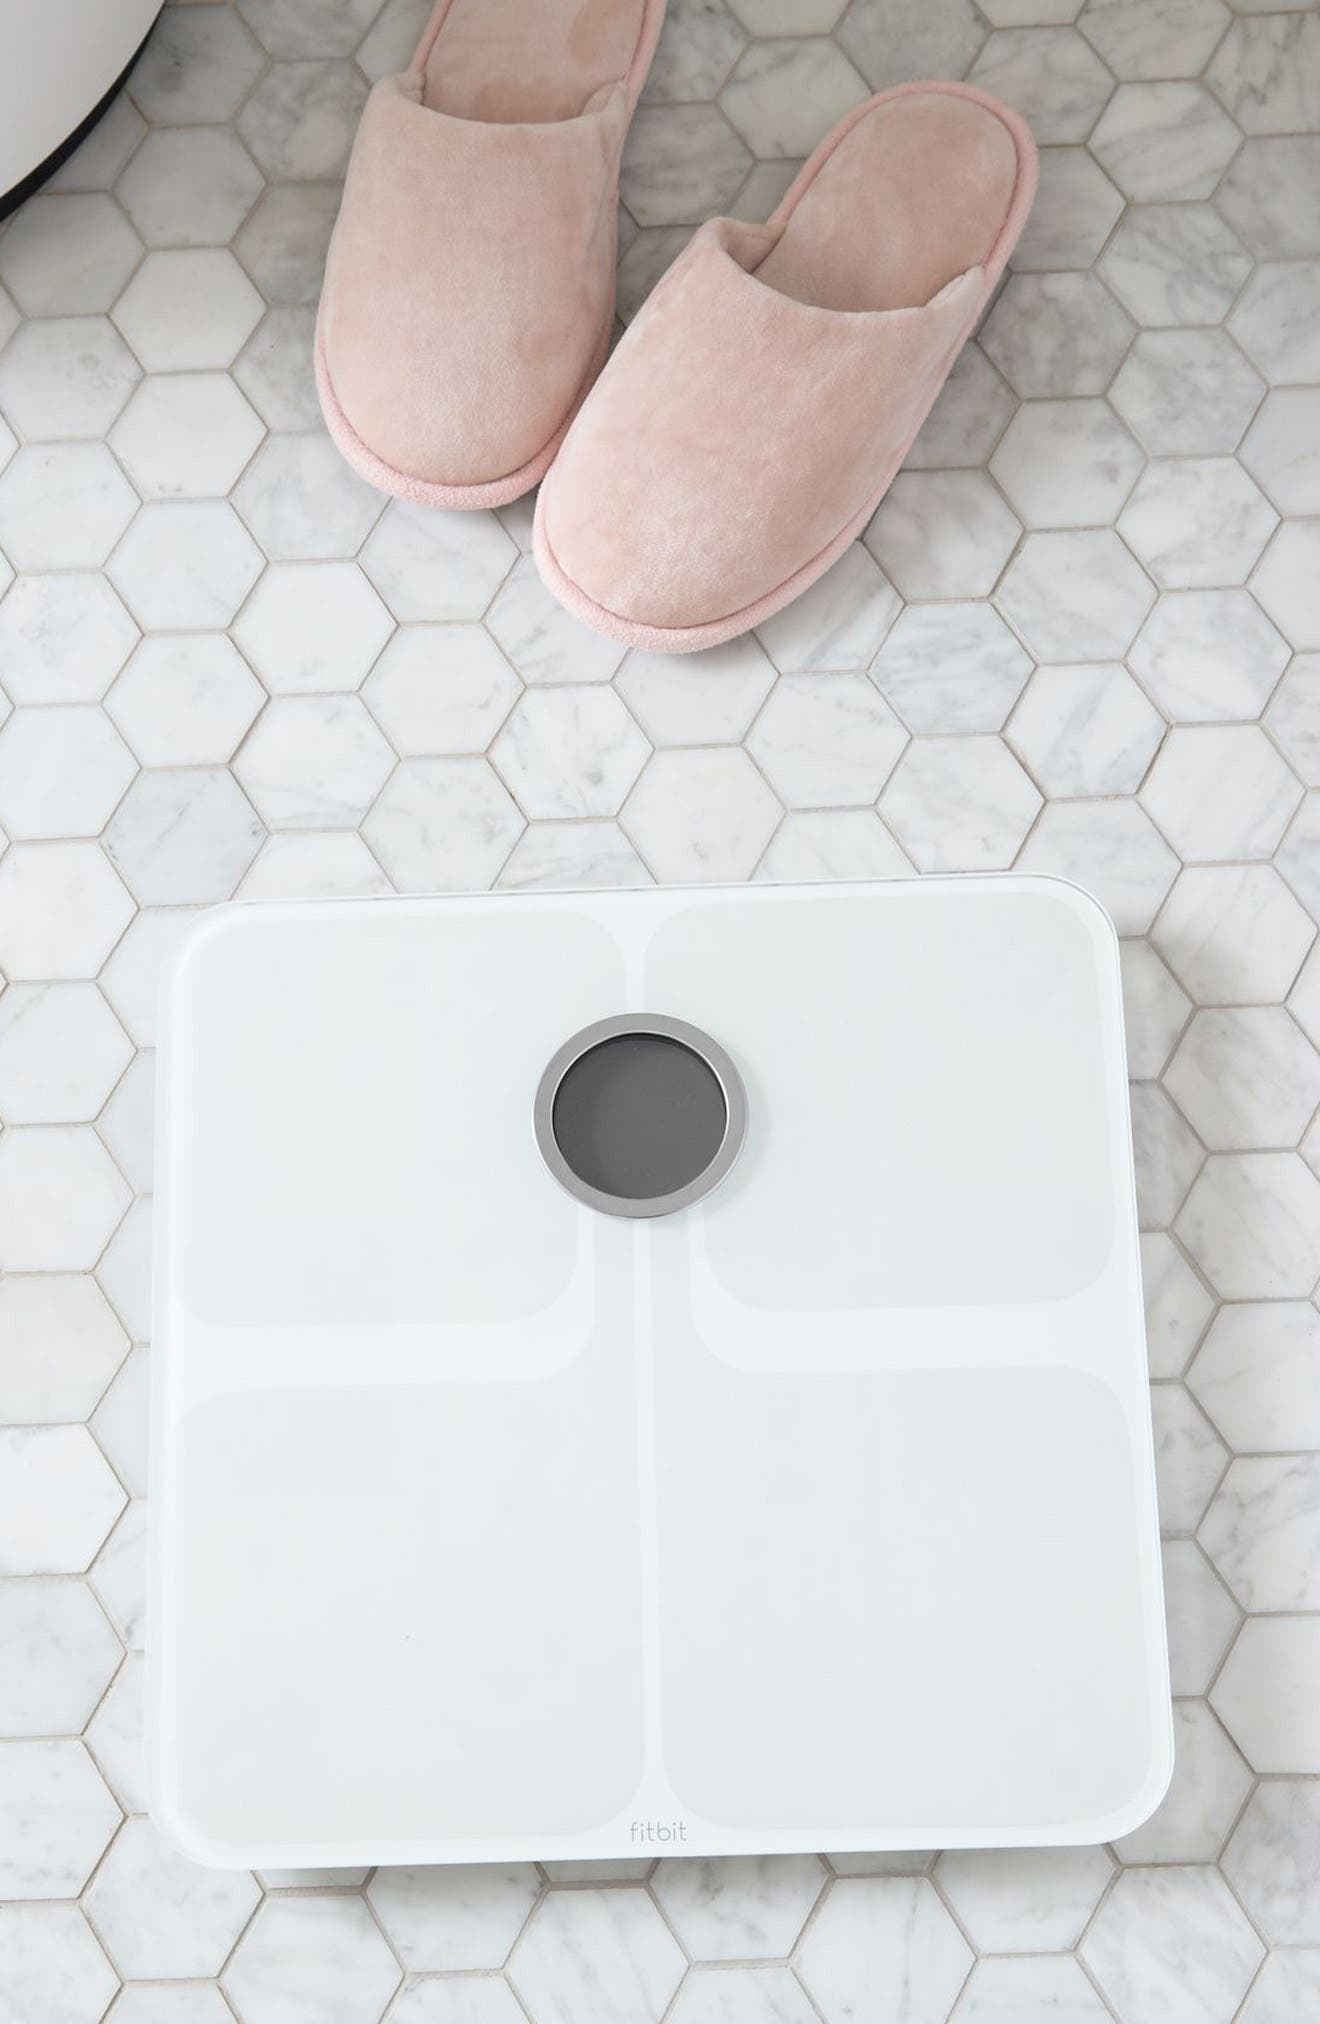 Aria 2 Wireless Smart Scale,                             Alternate thumbnail 2, color,                             White